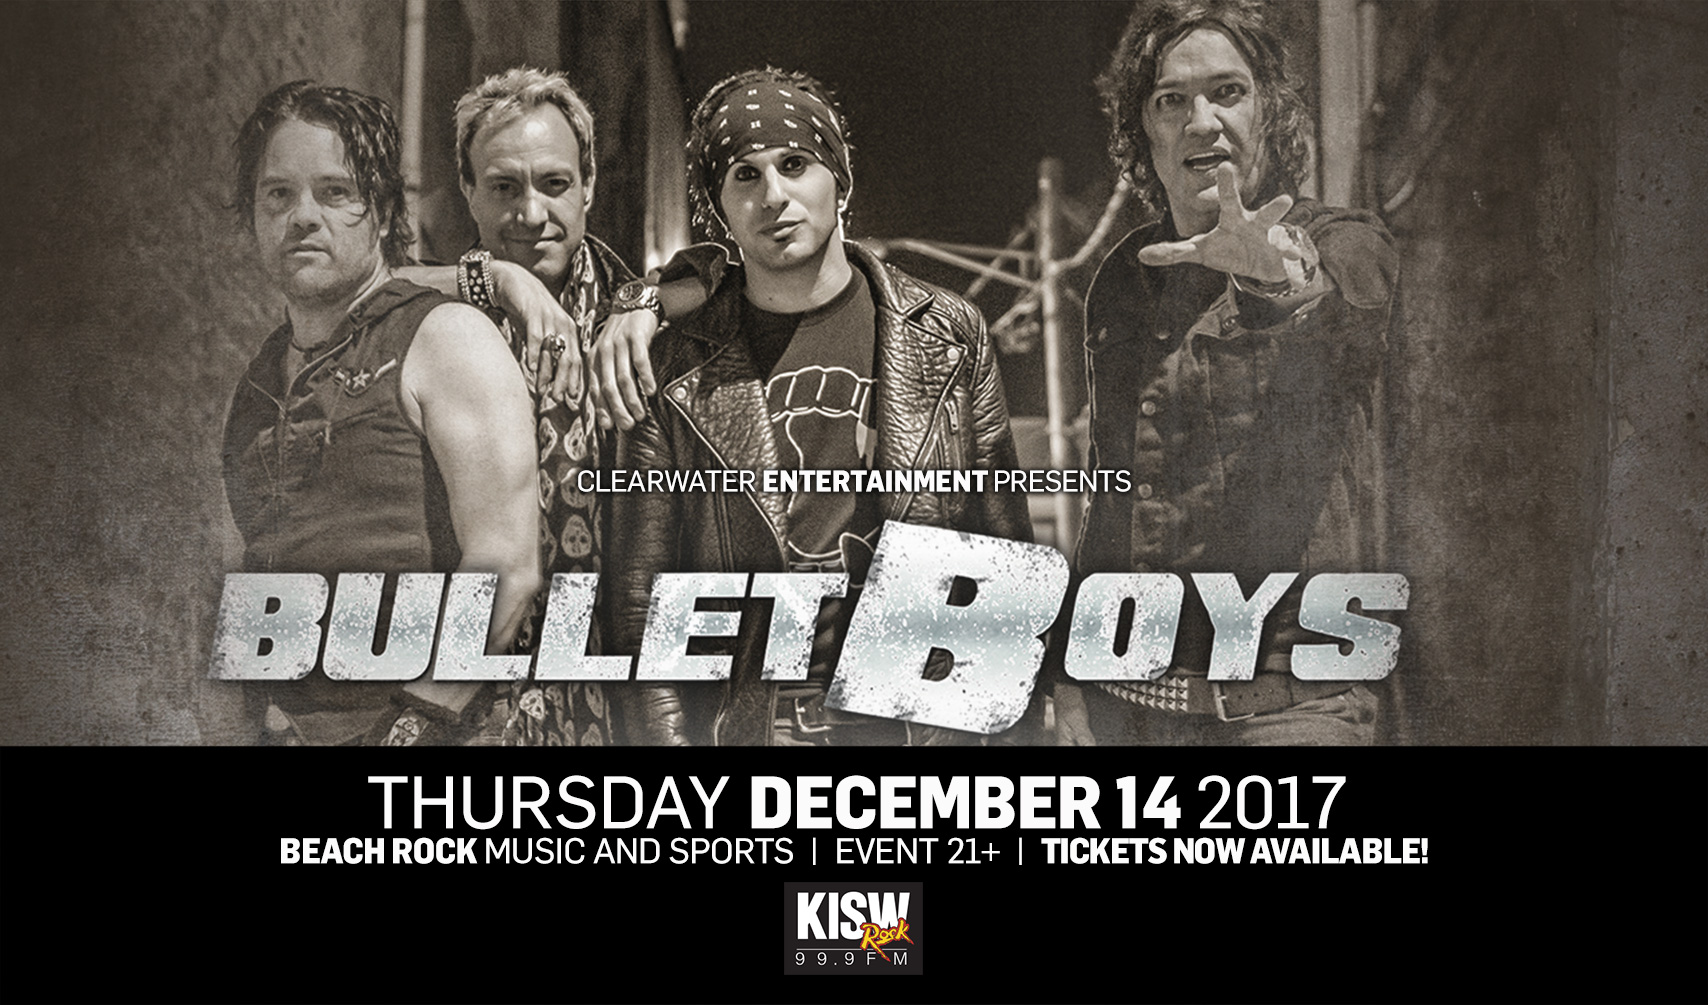 The BulletBoys at Clearwater Casino Resort